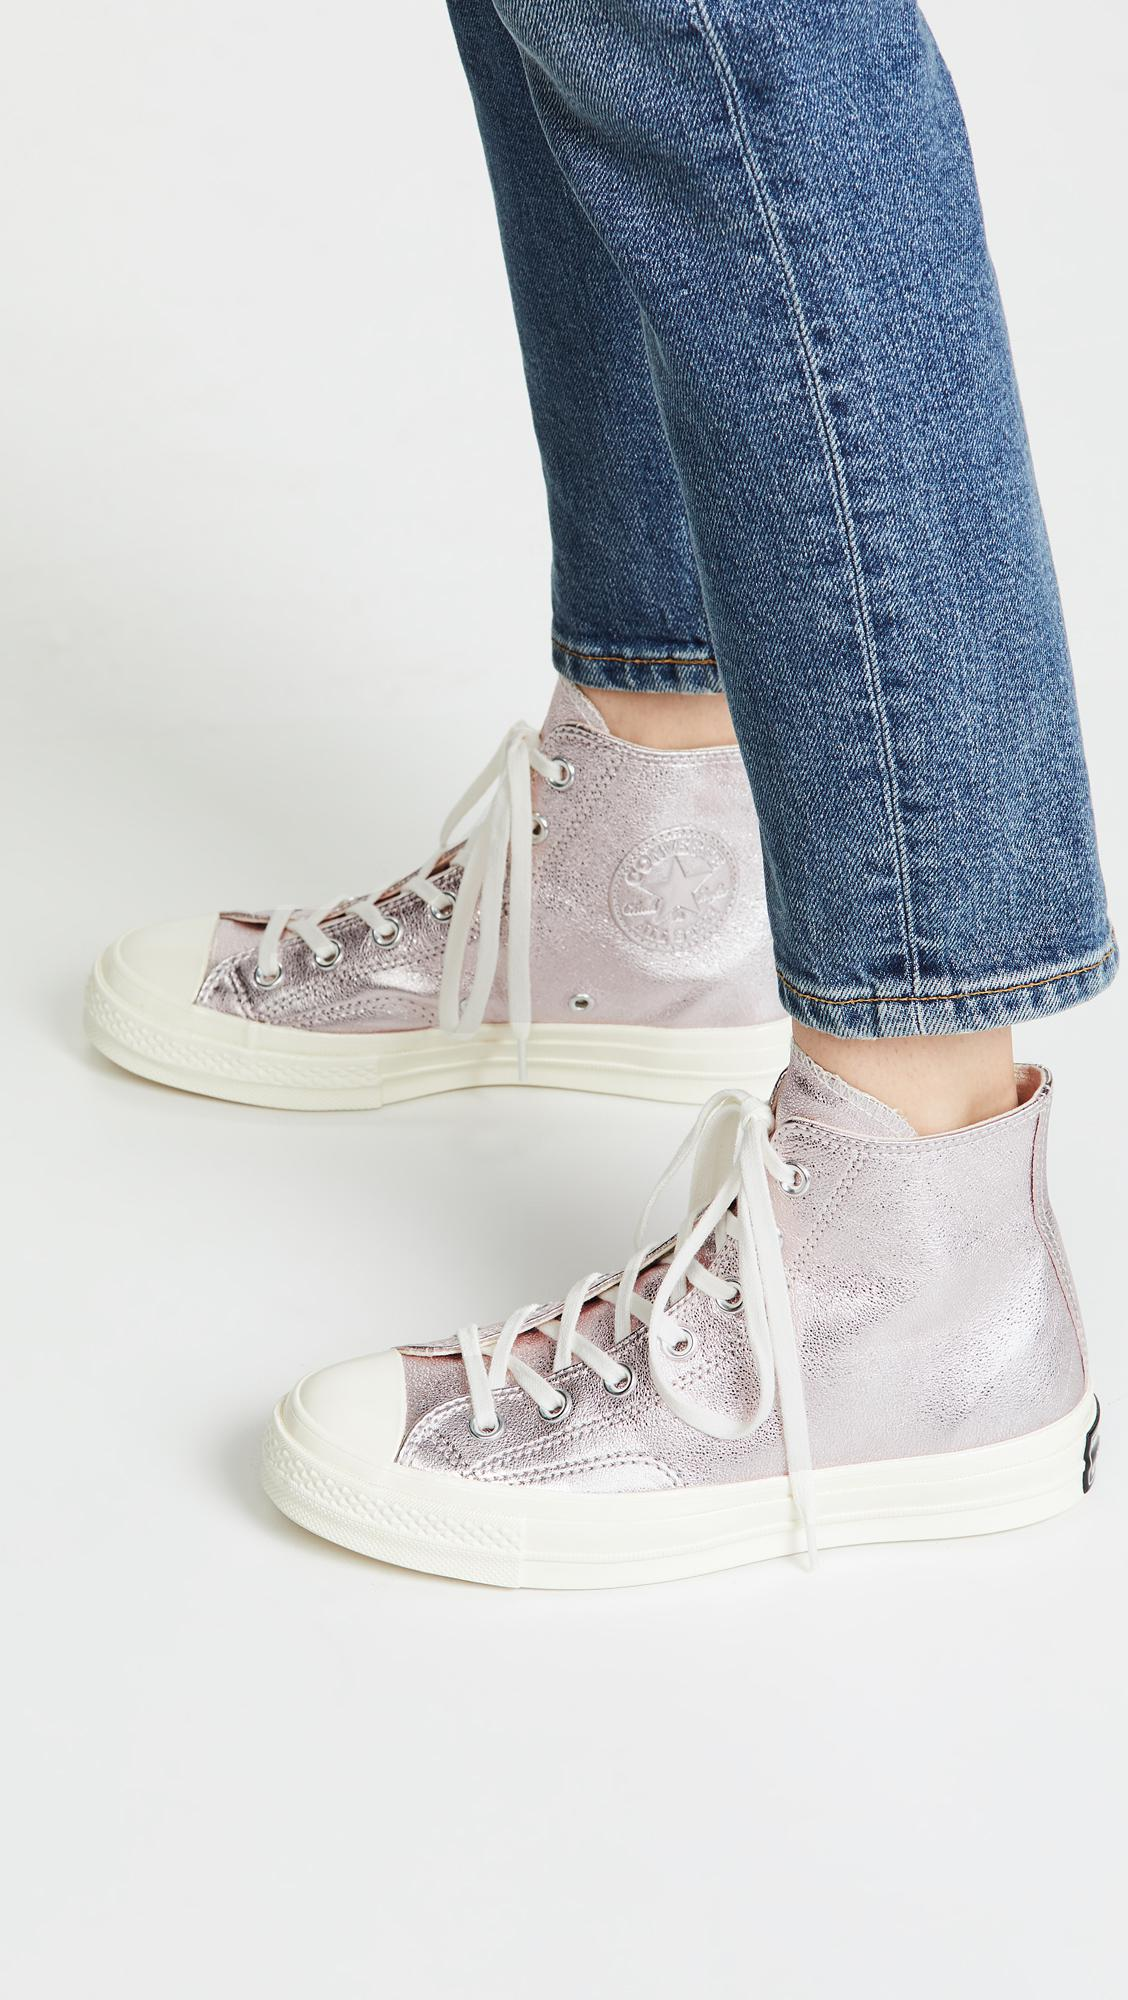 89146d9e23d4 Lyst - Converse Chuck 70s High Top Heavy Metal Sneakers in Pink